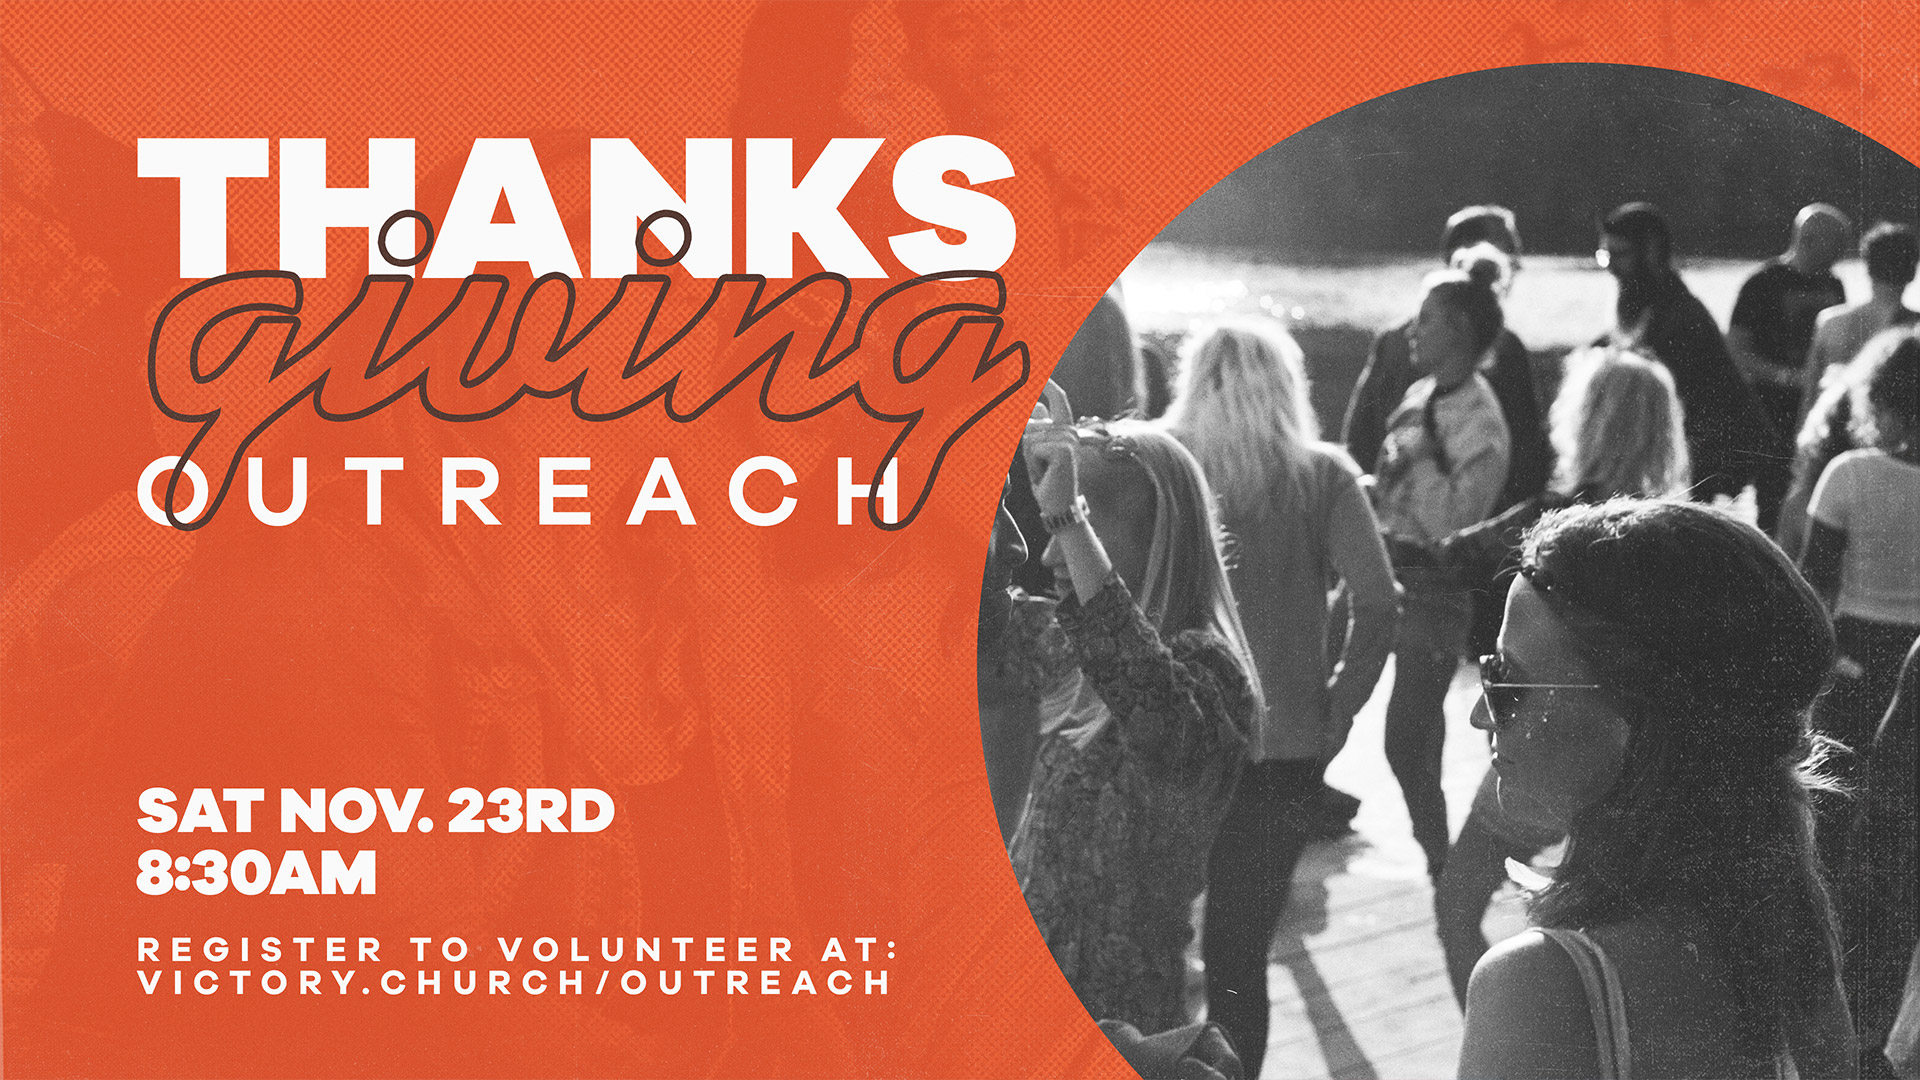 OKC | Thanksgiving Outreach at Victory Church